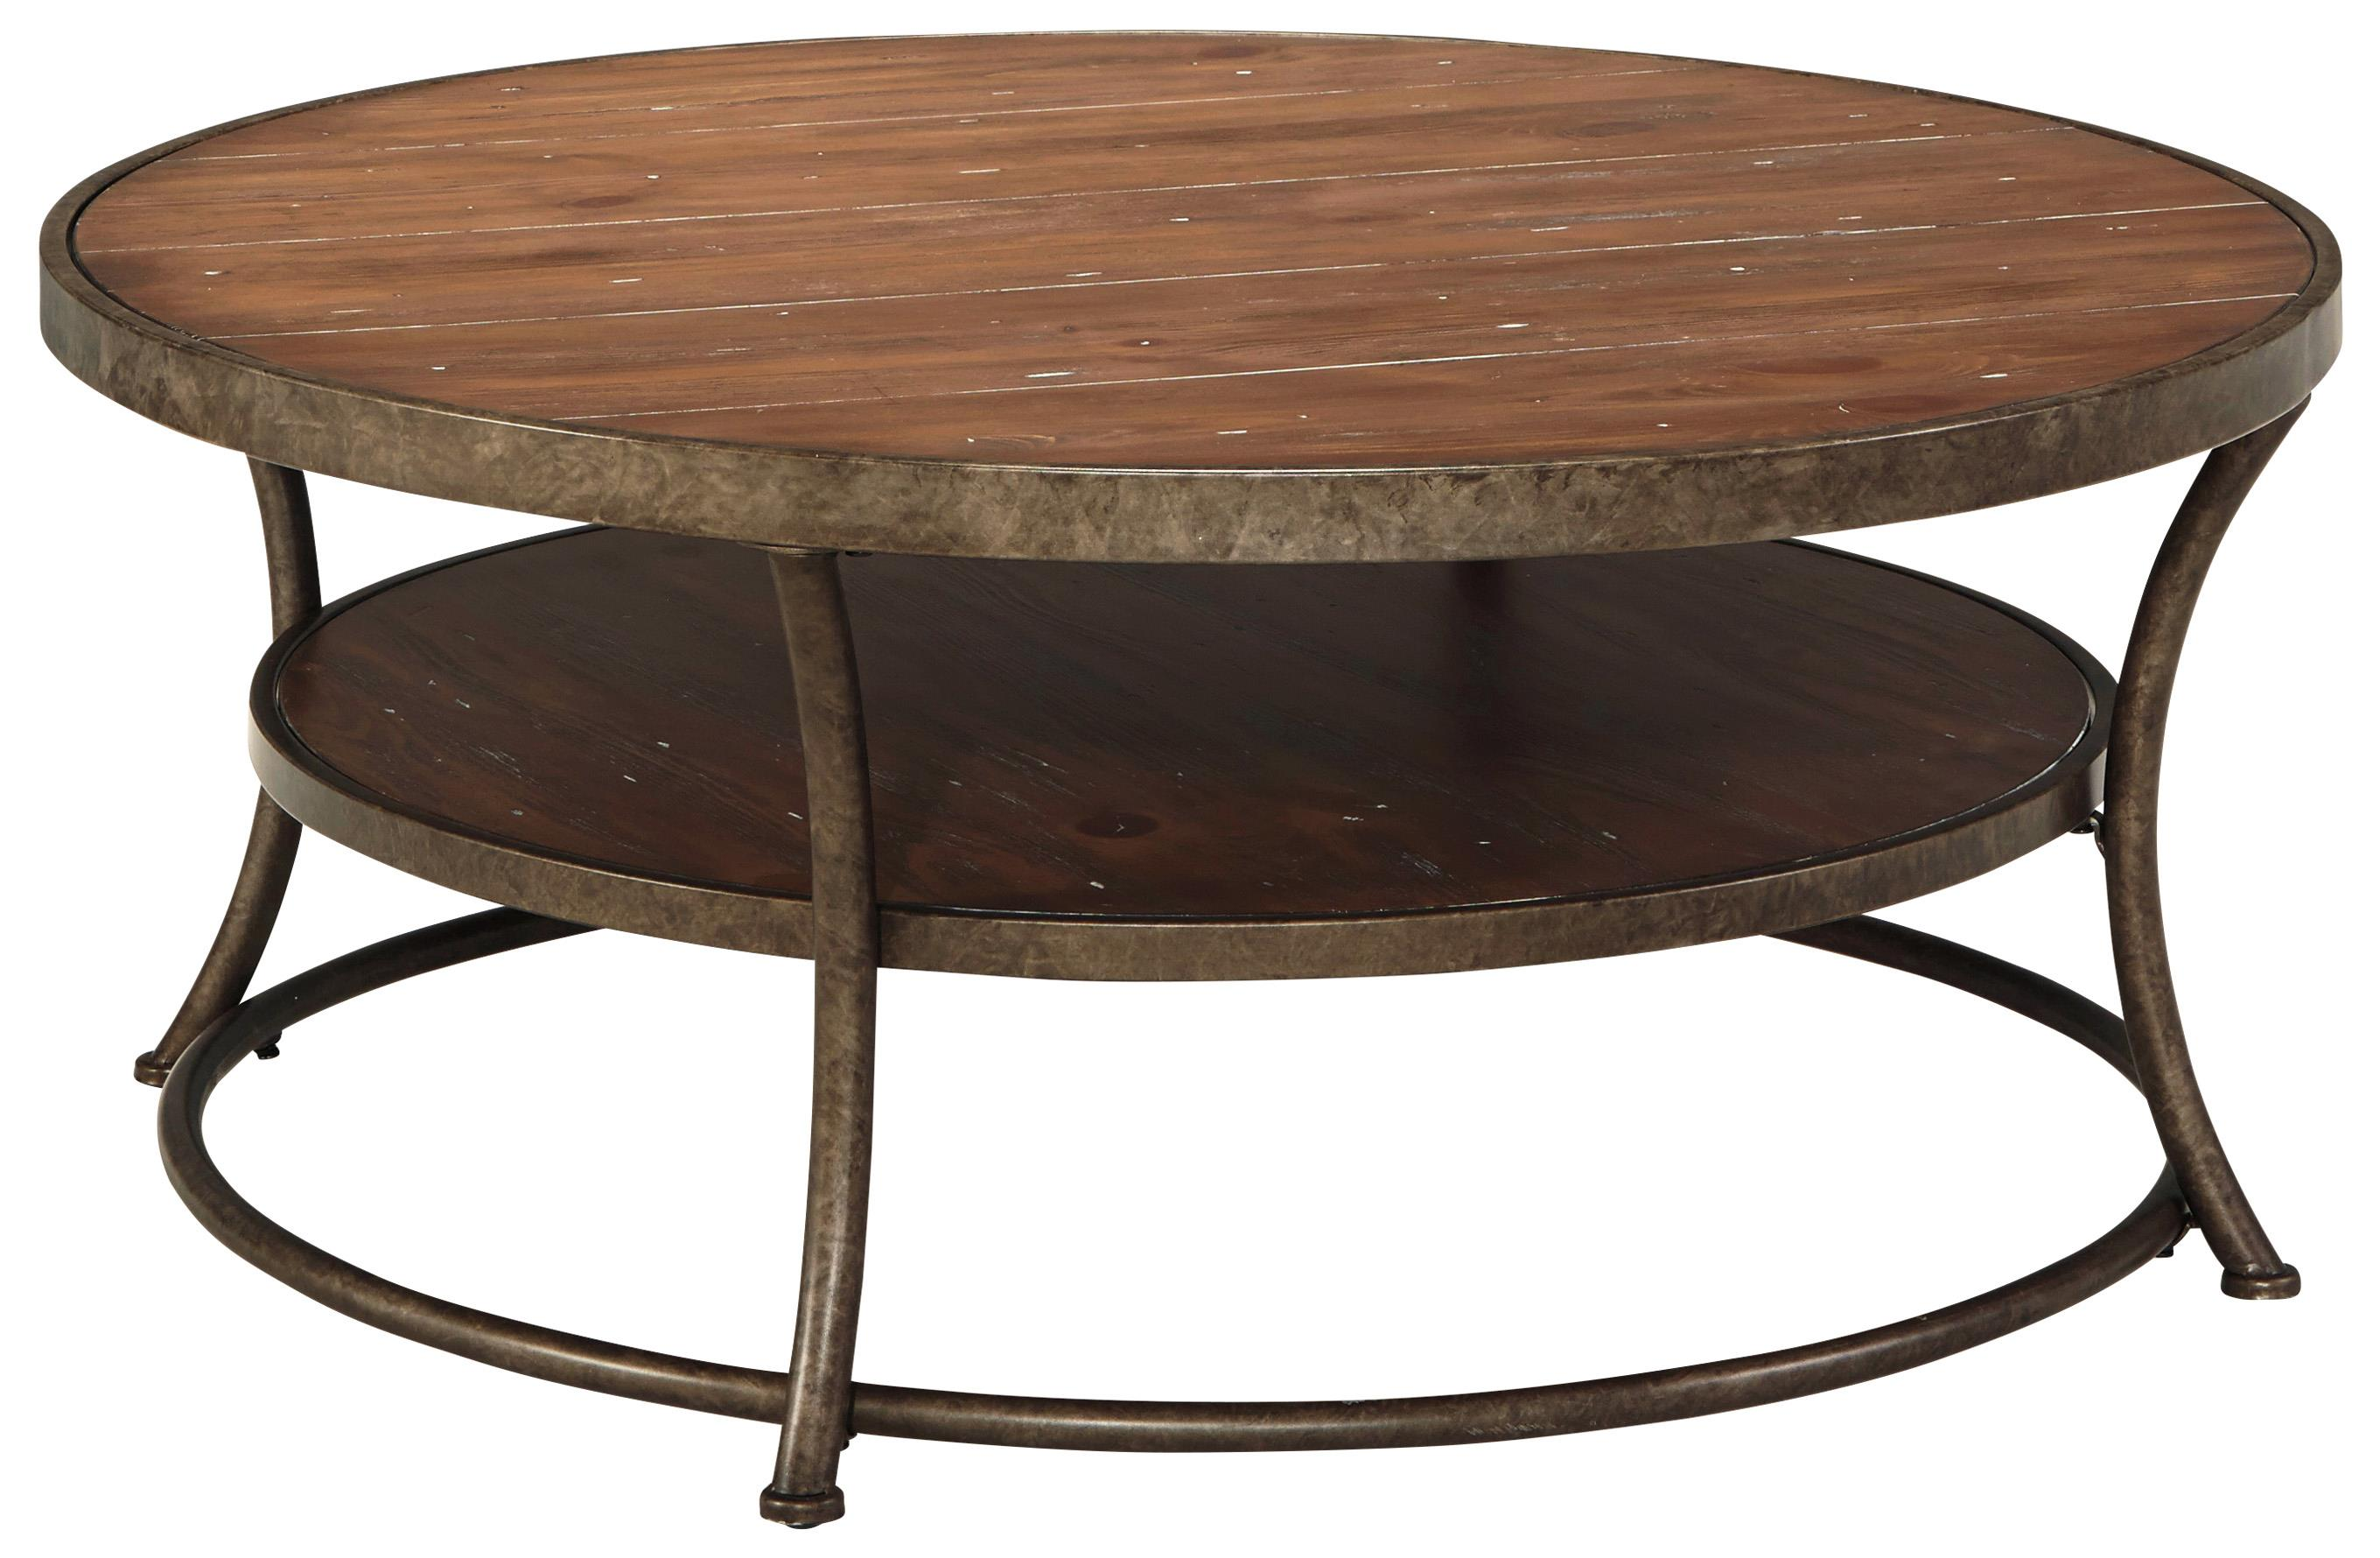 Rustic Metal Frame Round Cocktail Table With Distressed Pine Top Shelf By Signature Design By